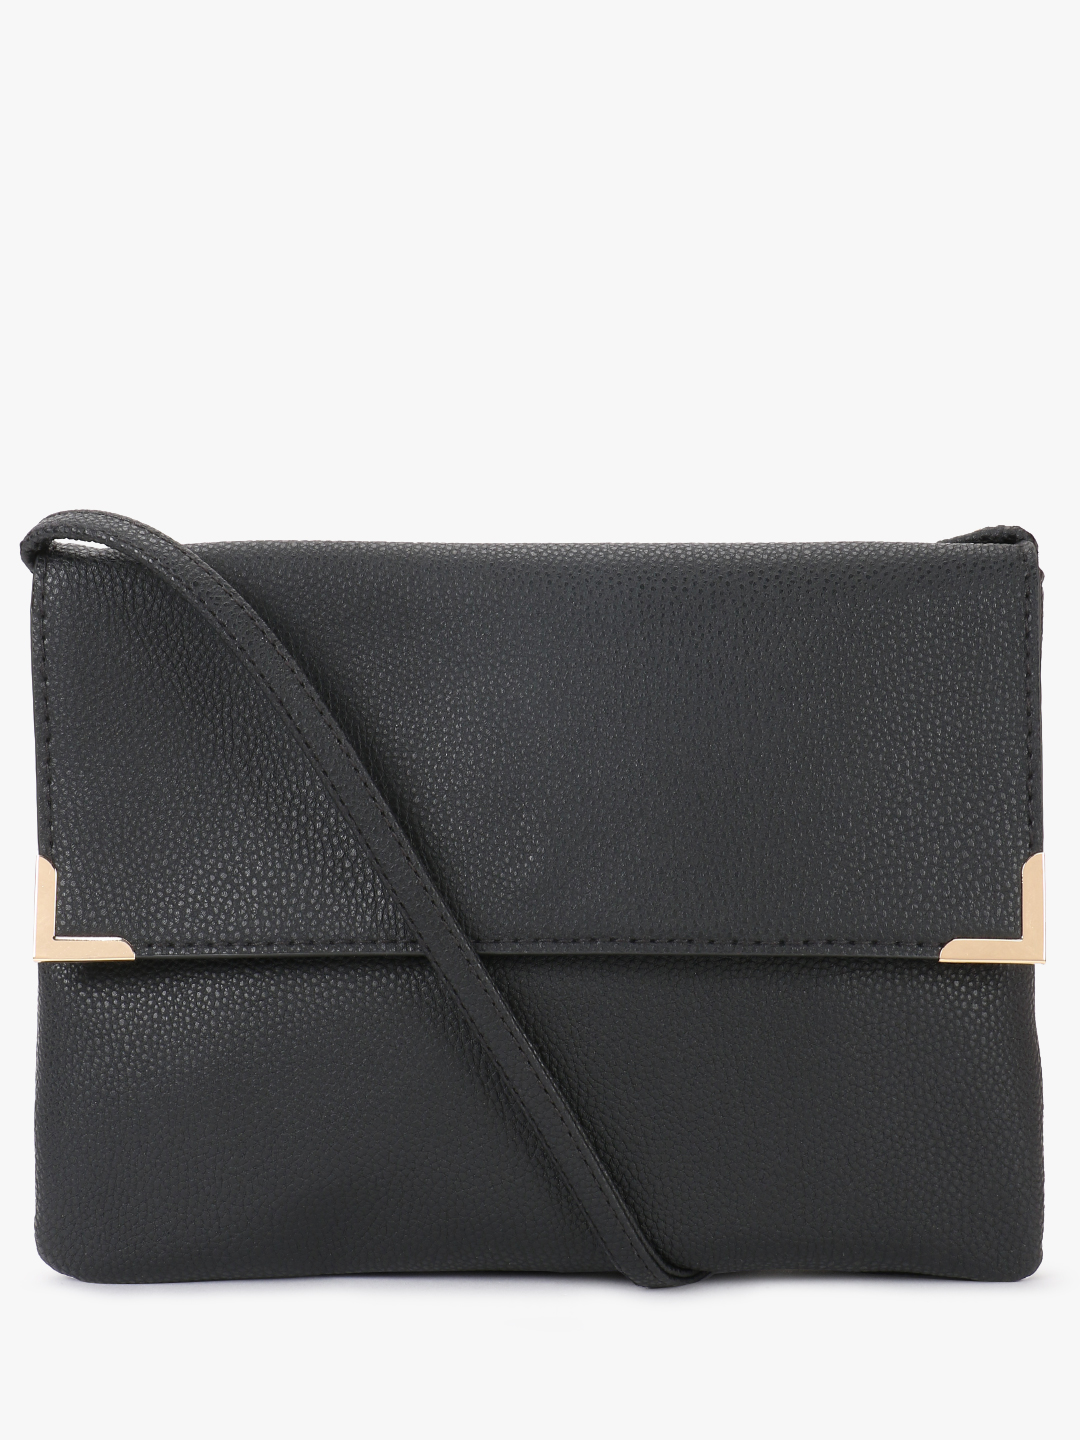 New Look Black Basic Sling Bag 1